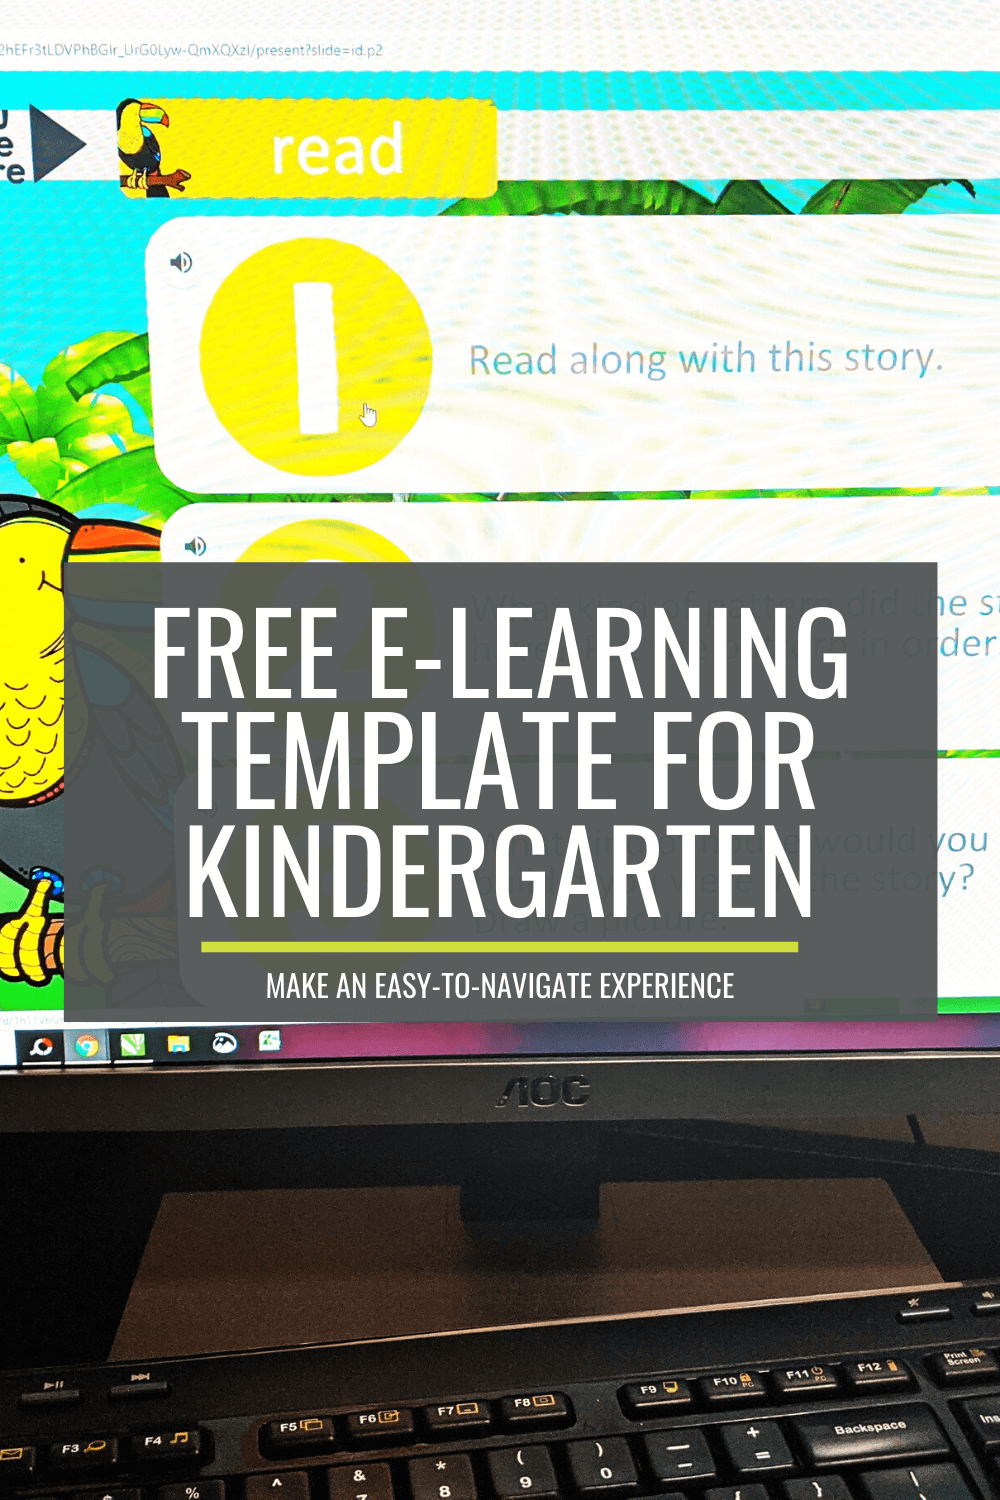 Free, Easy-to-Navigate eLearning Template for Kindergarten